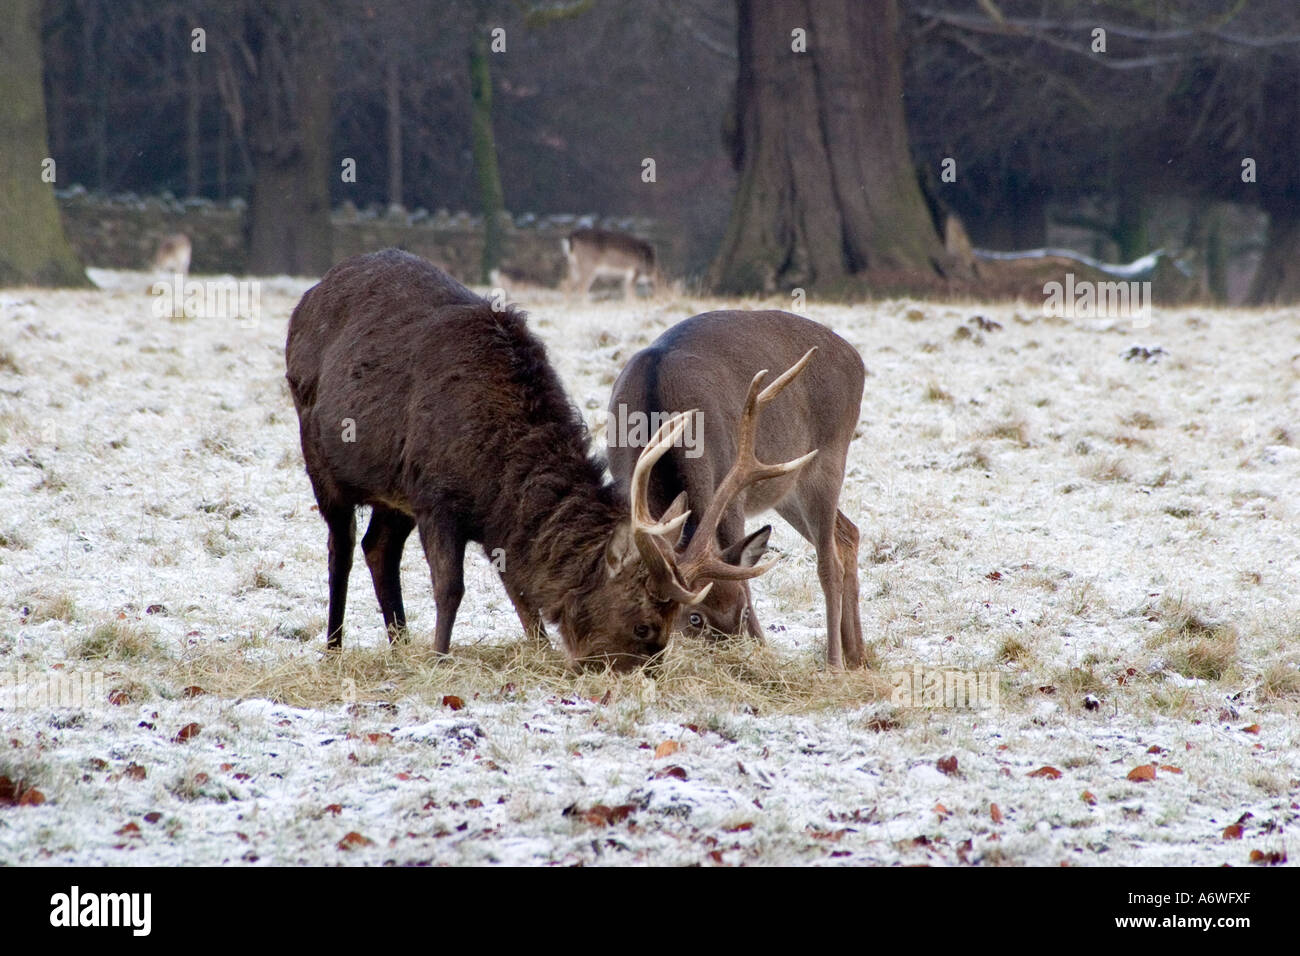 Deer in the snow at Rudding Park, Fountains Abbey, Dec 2006 Stock Photo